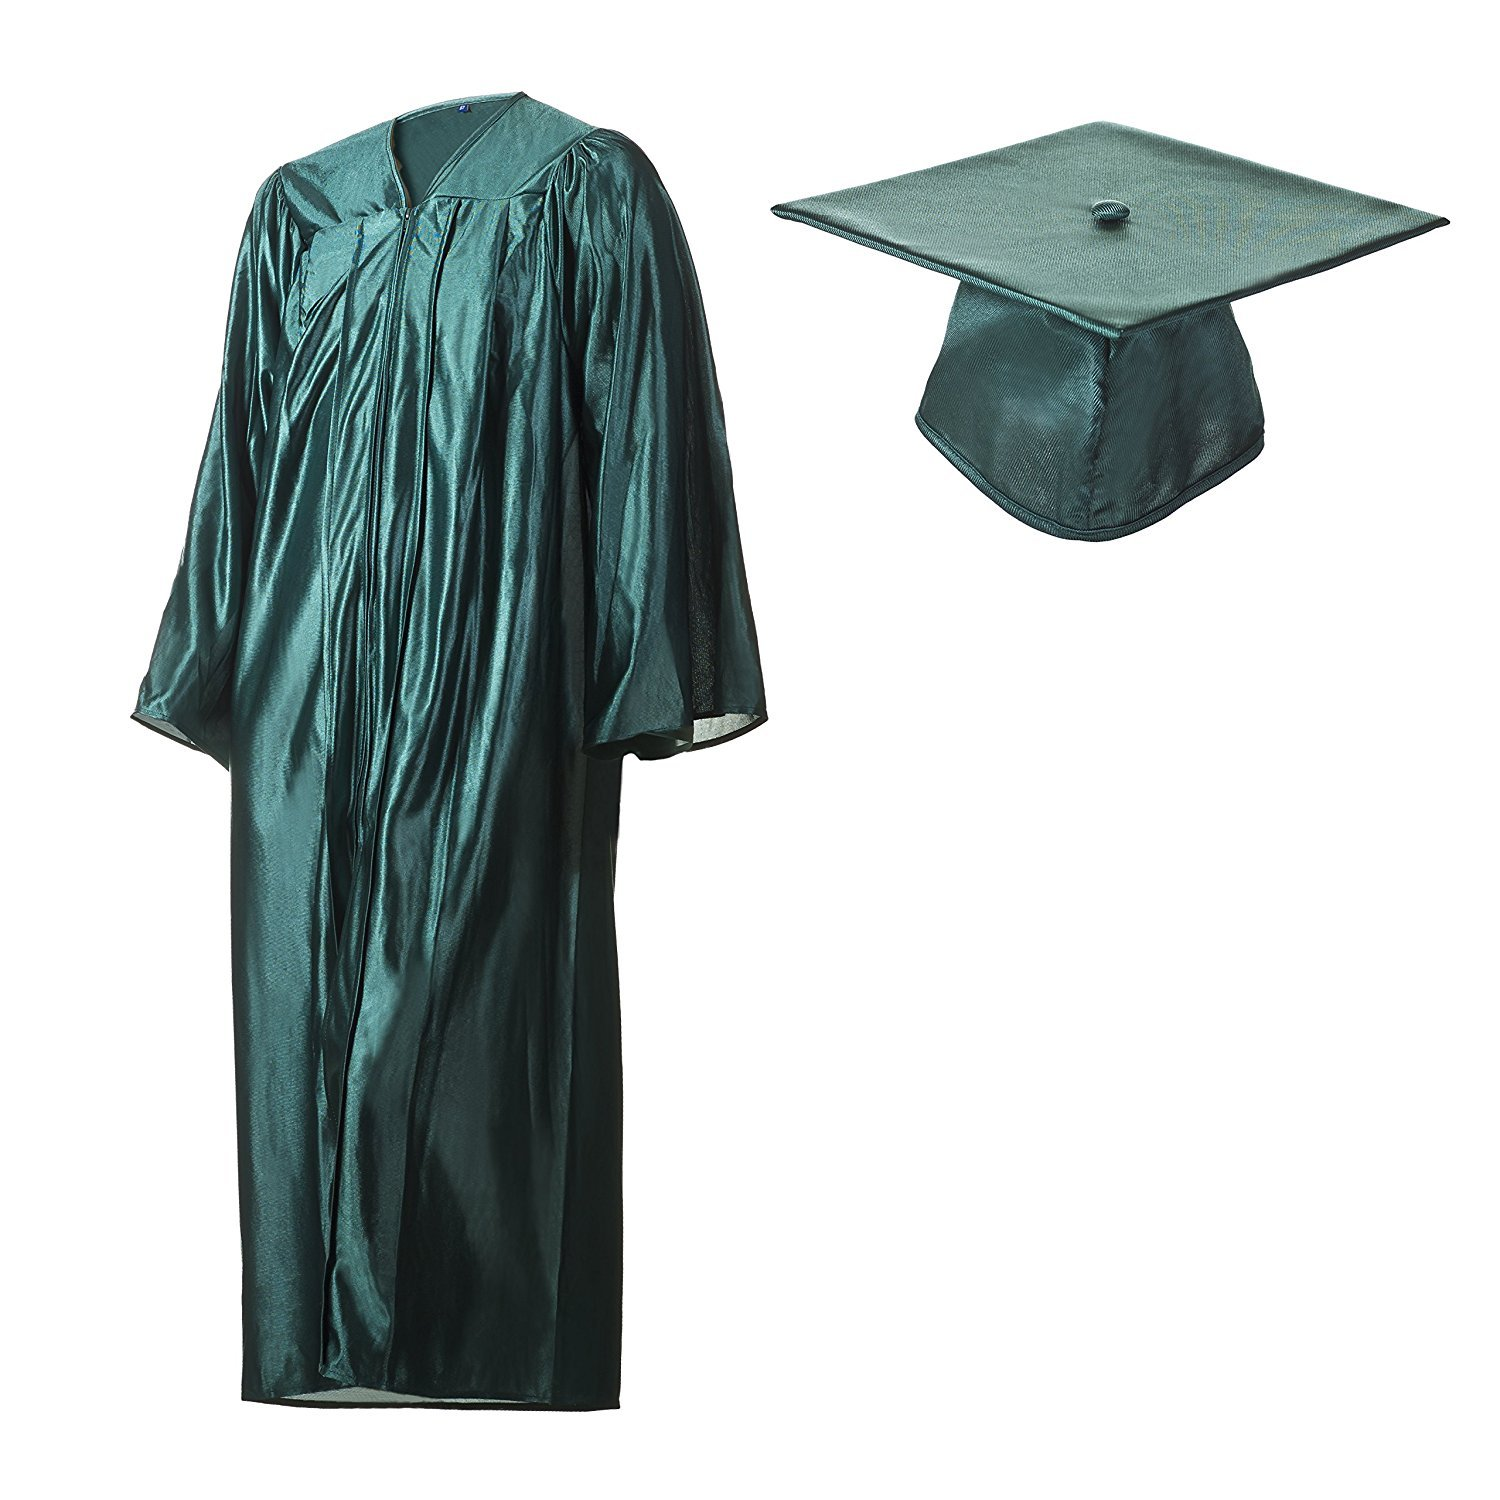 Amazon.com: Graduation Cap and Gown Set Shiny Forest Green in ...